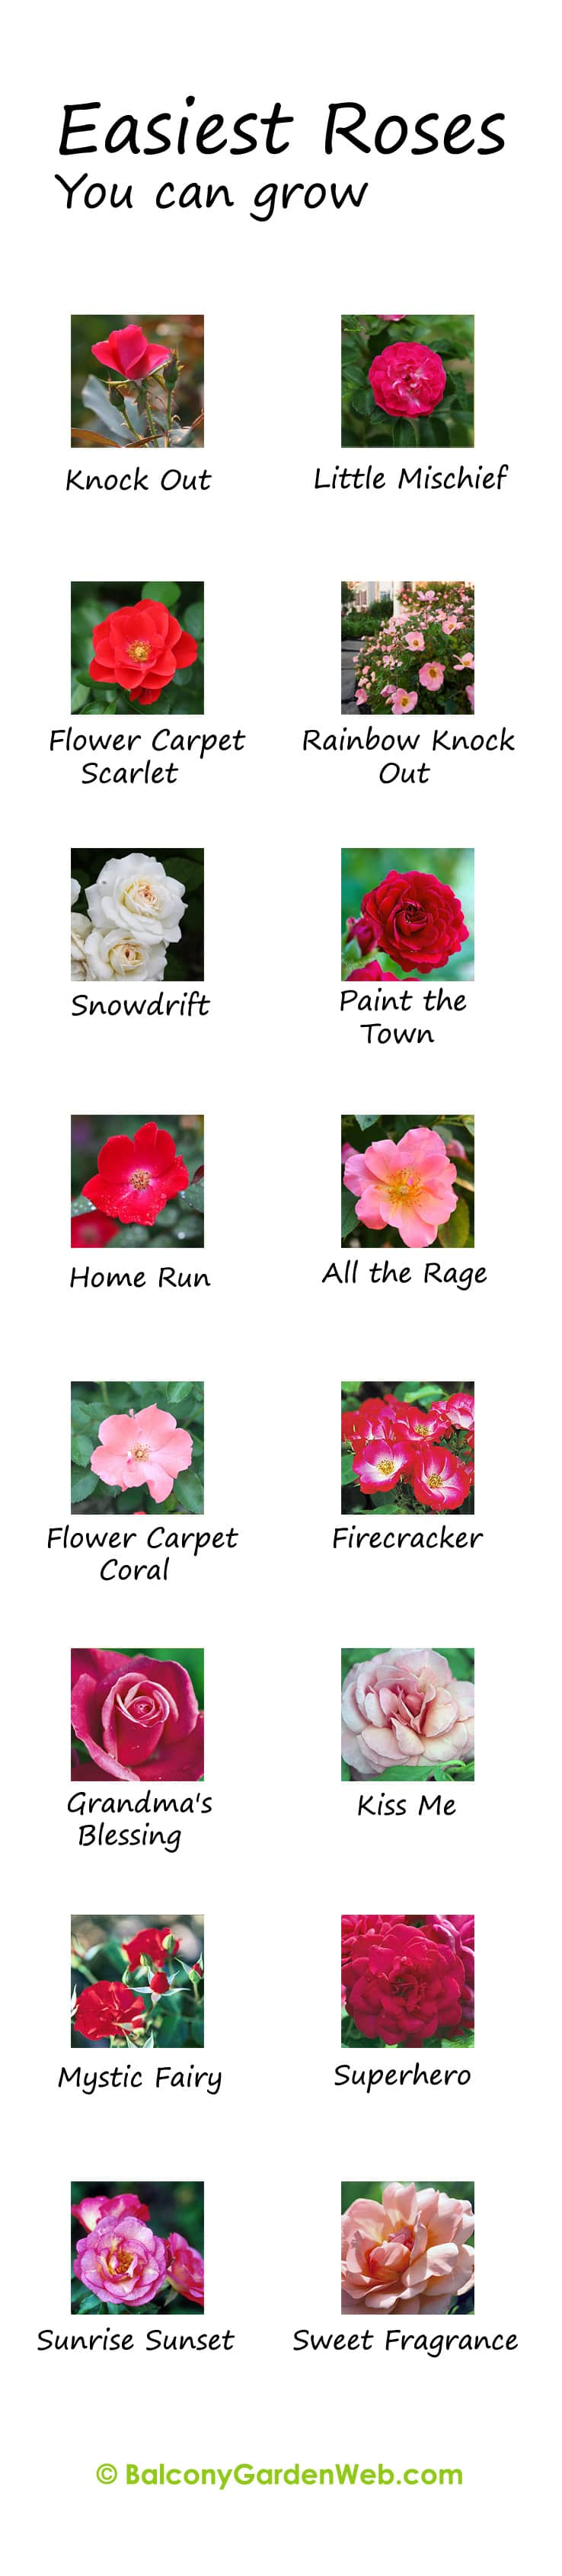 What are the easiest rose varieties? You might have known but the chart given here can be useful for you. More amazing info in this post.